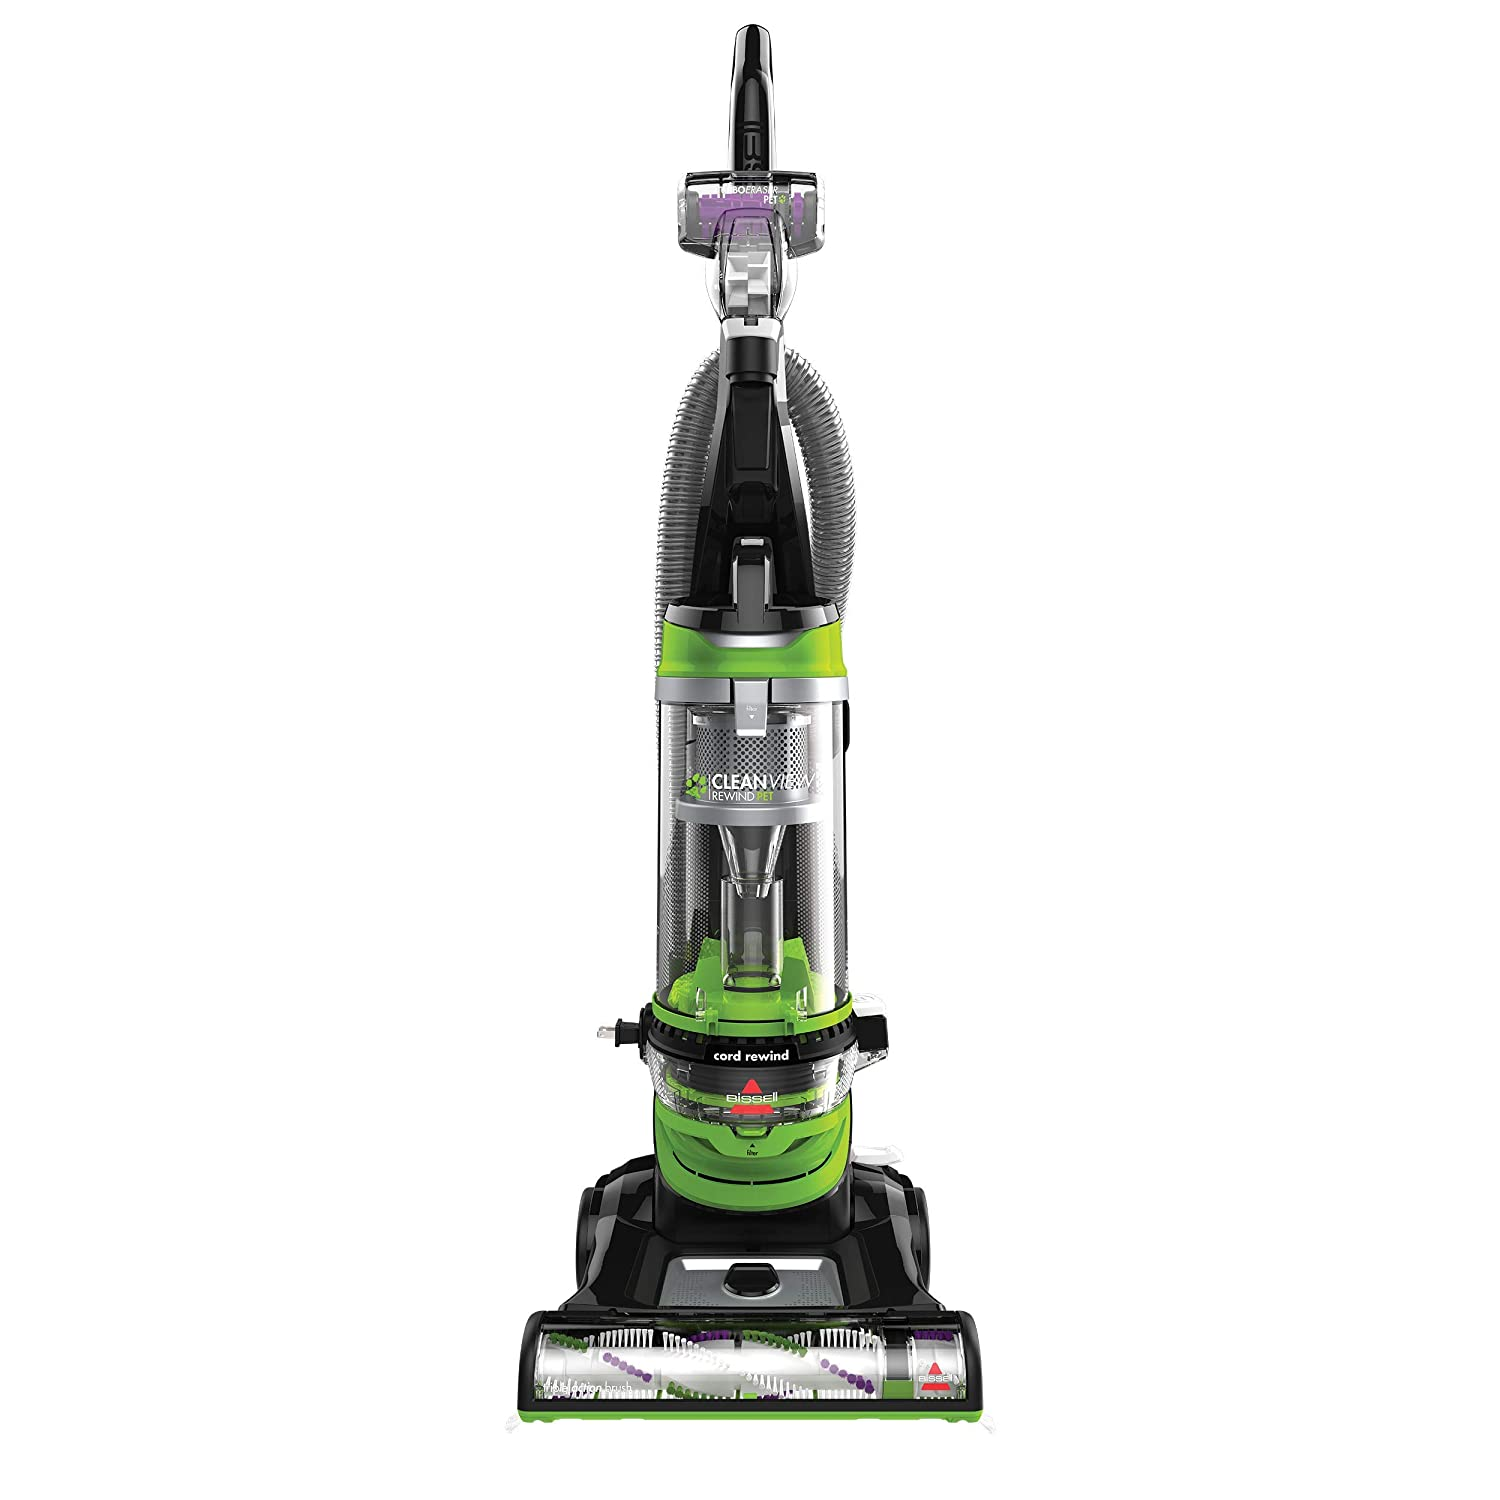 BISSELL Cleanview Rewind Pet Deluxe Upright Vacuum Cleaner, 24899, Green (Renewed)